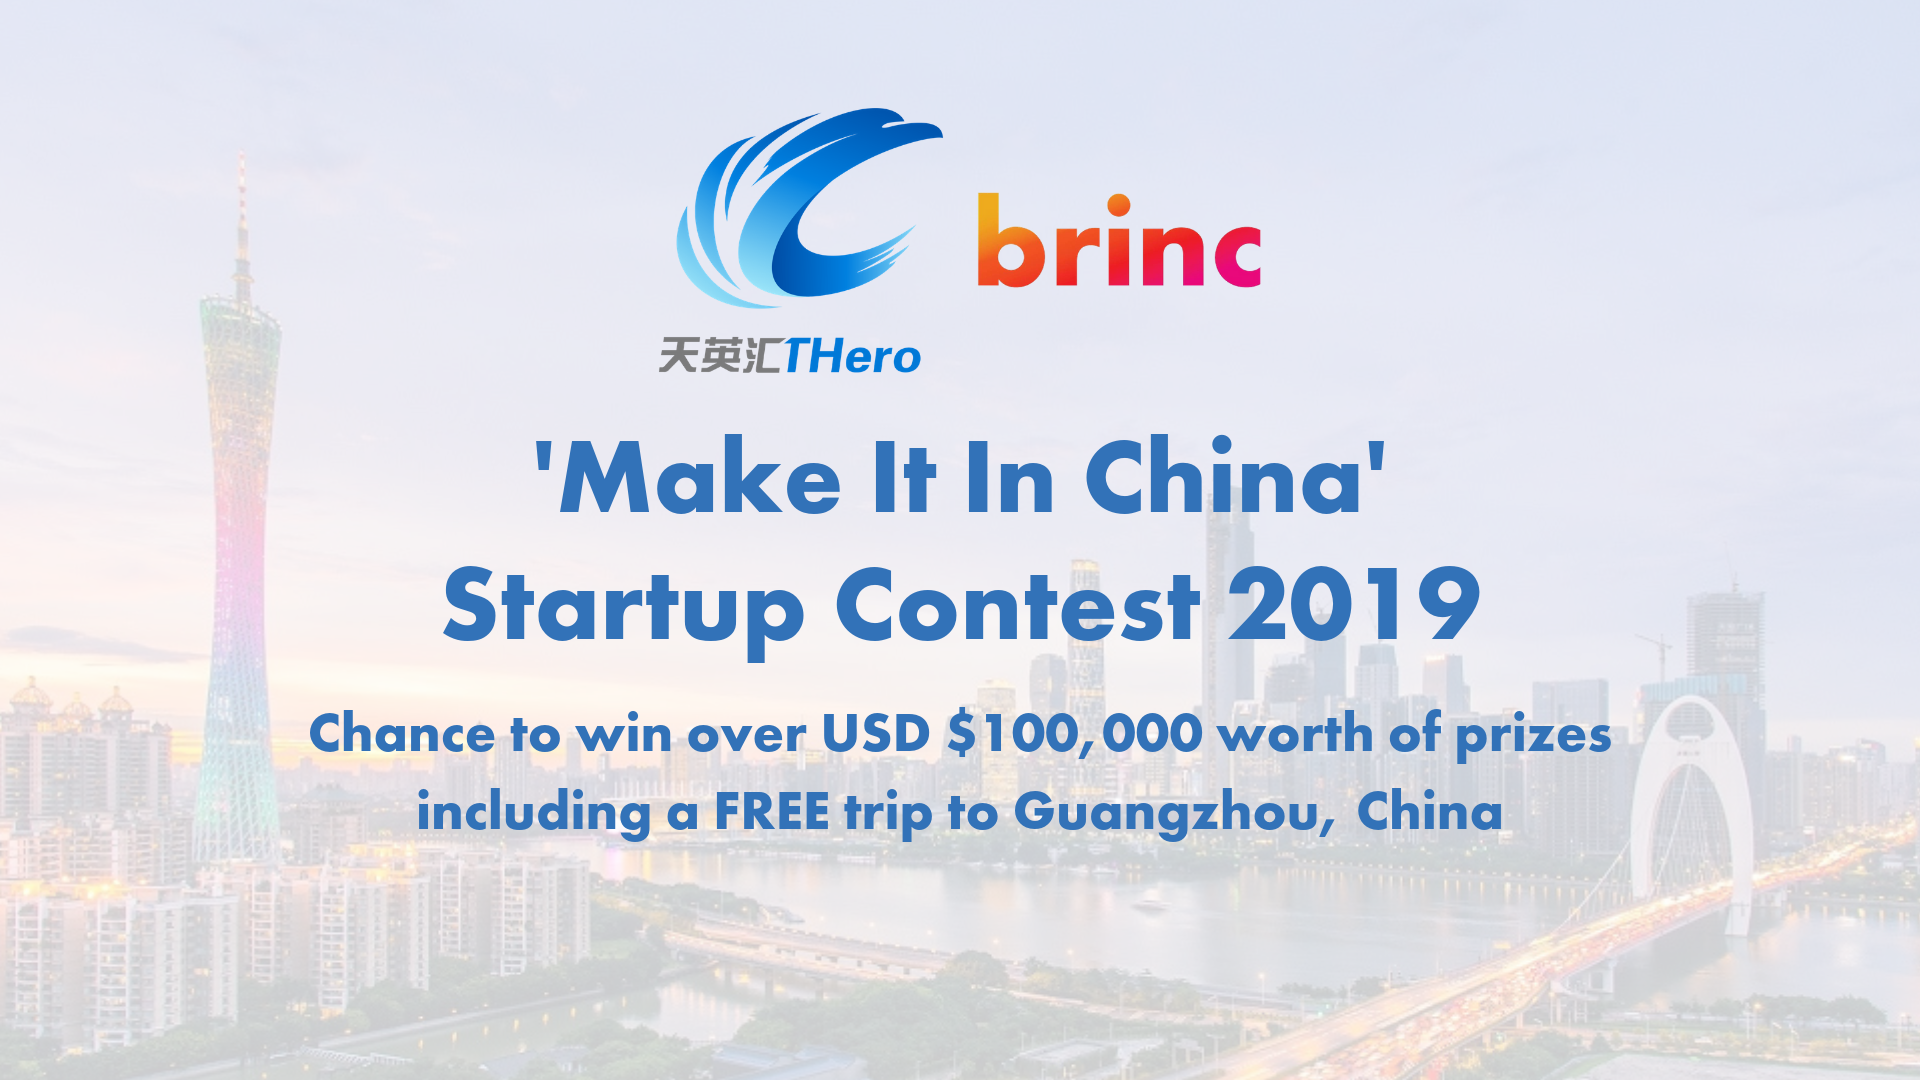 THero - Make It In China Startup Contest - Website.png